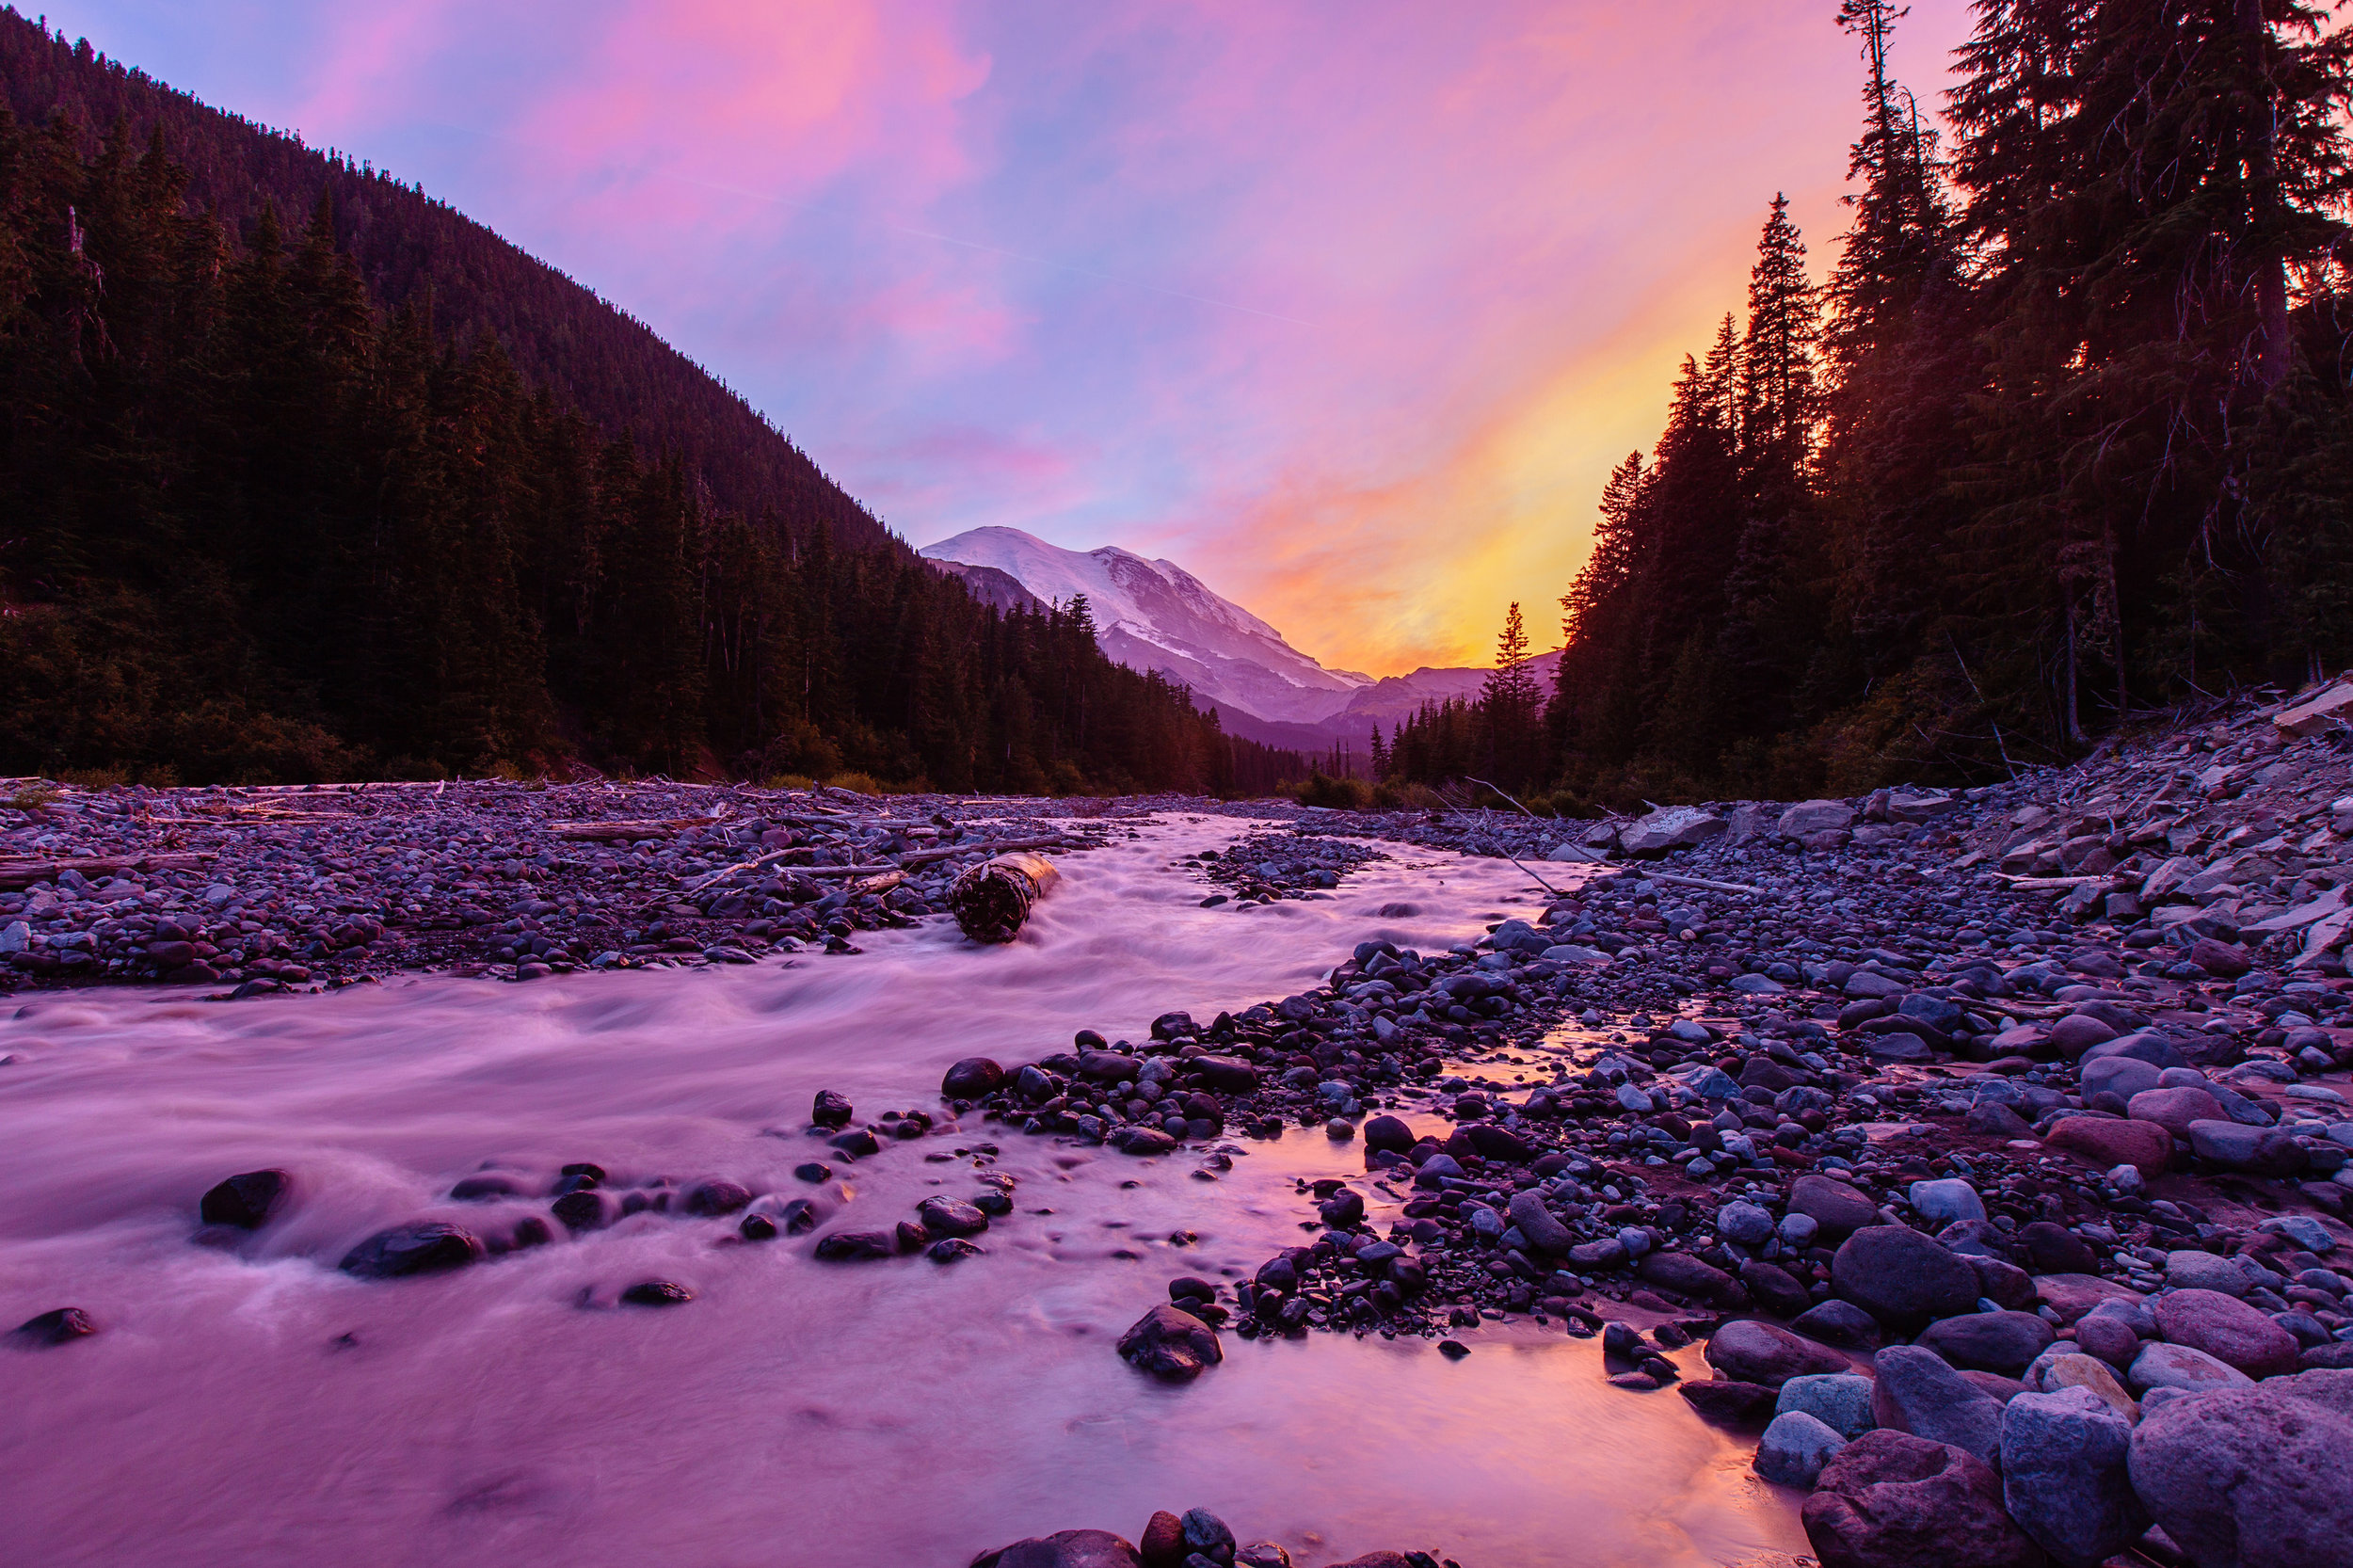 cindygiovagnoli_mtrainier_washington_nationalparks.jpg